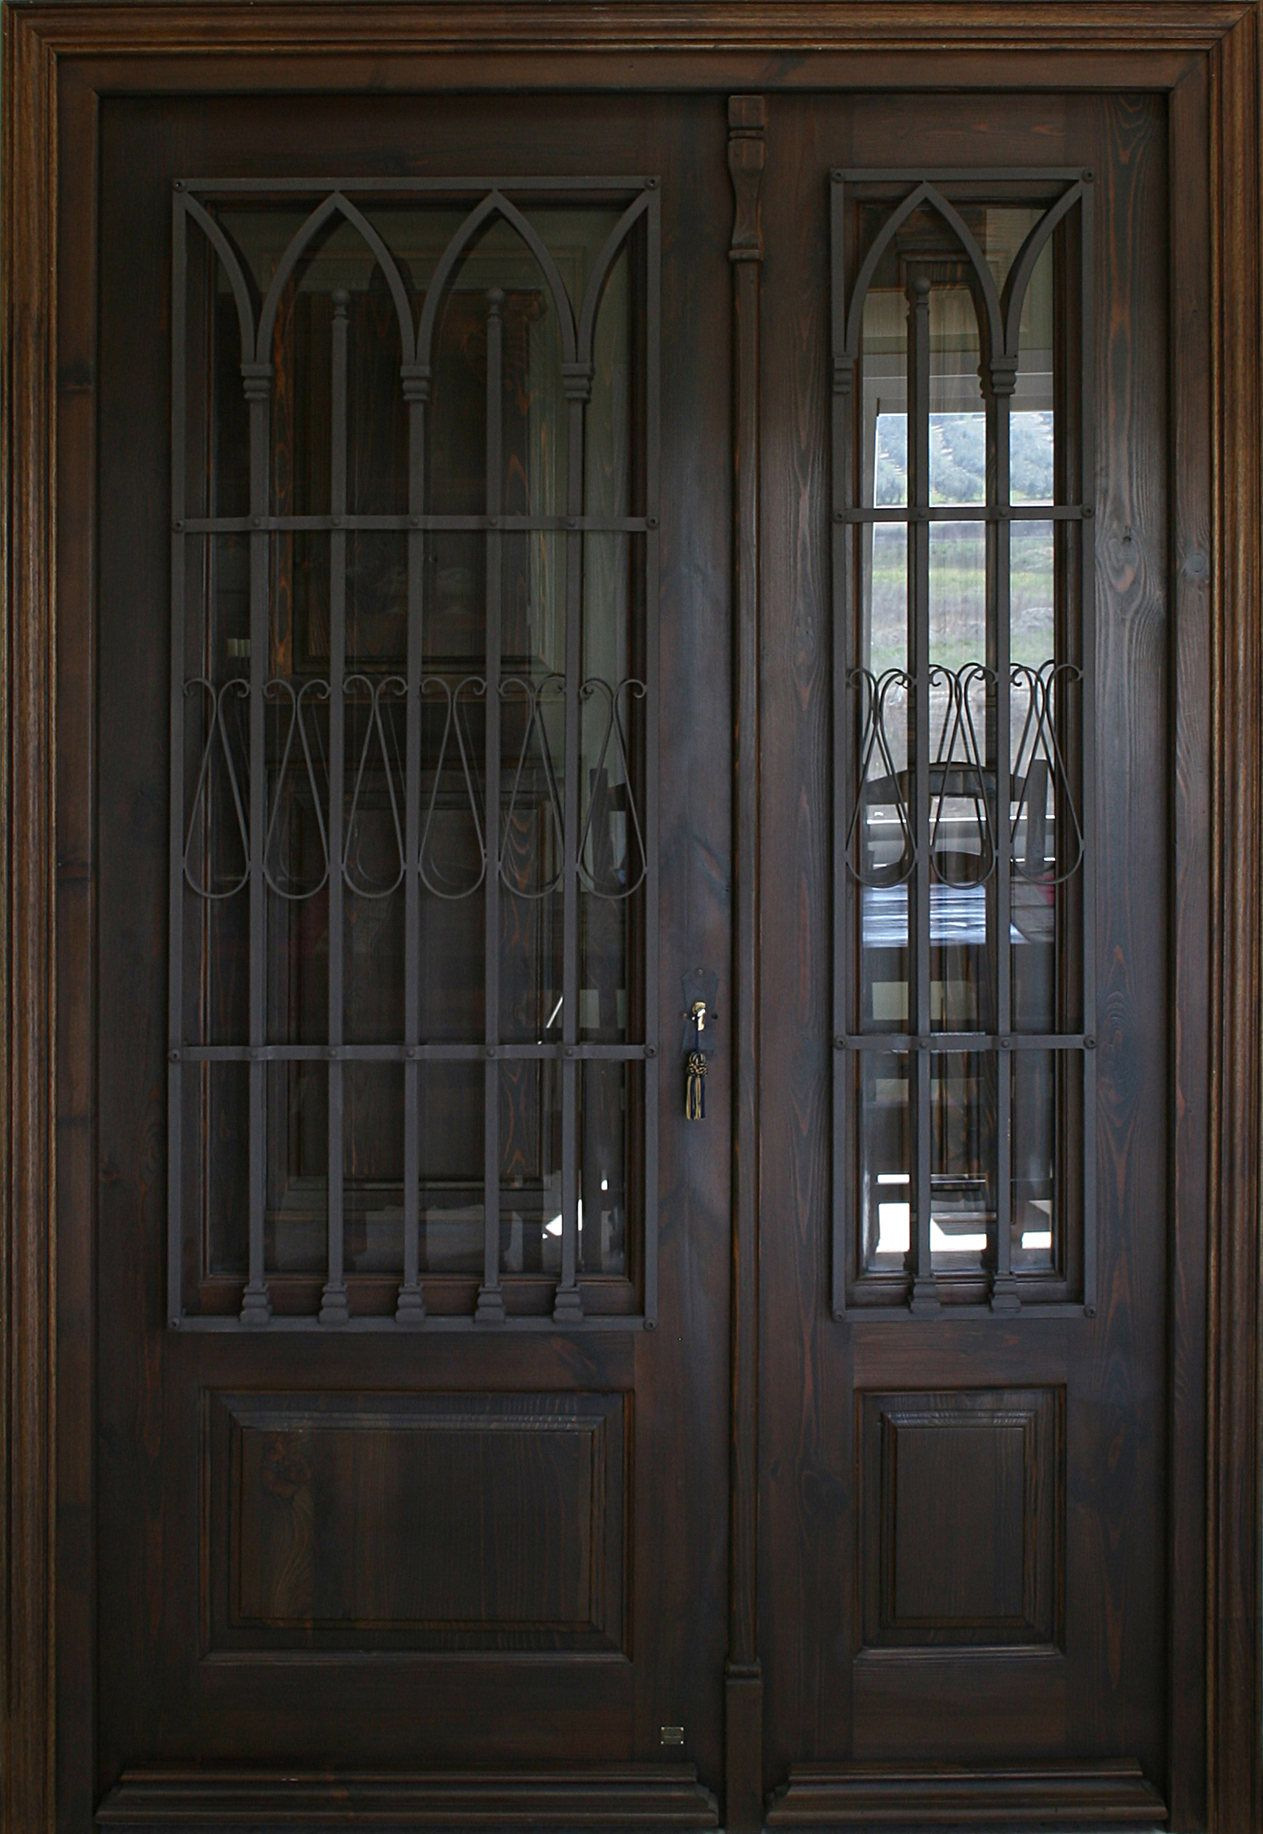 Araceli fijo in 2019 exquisite doors gates tall for Puerta de madera doble estilo antiguo